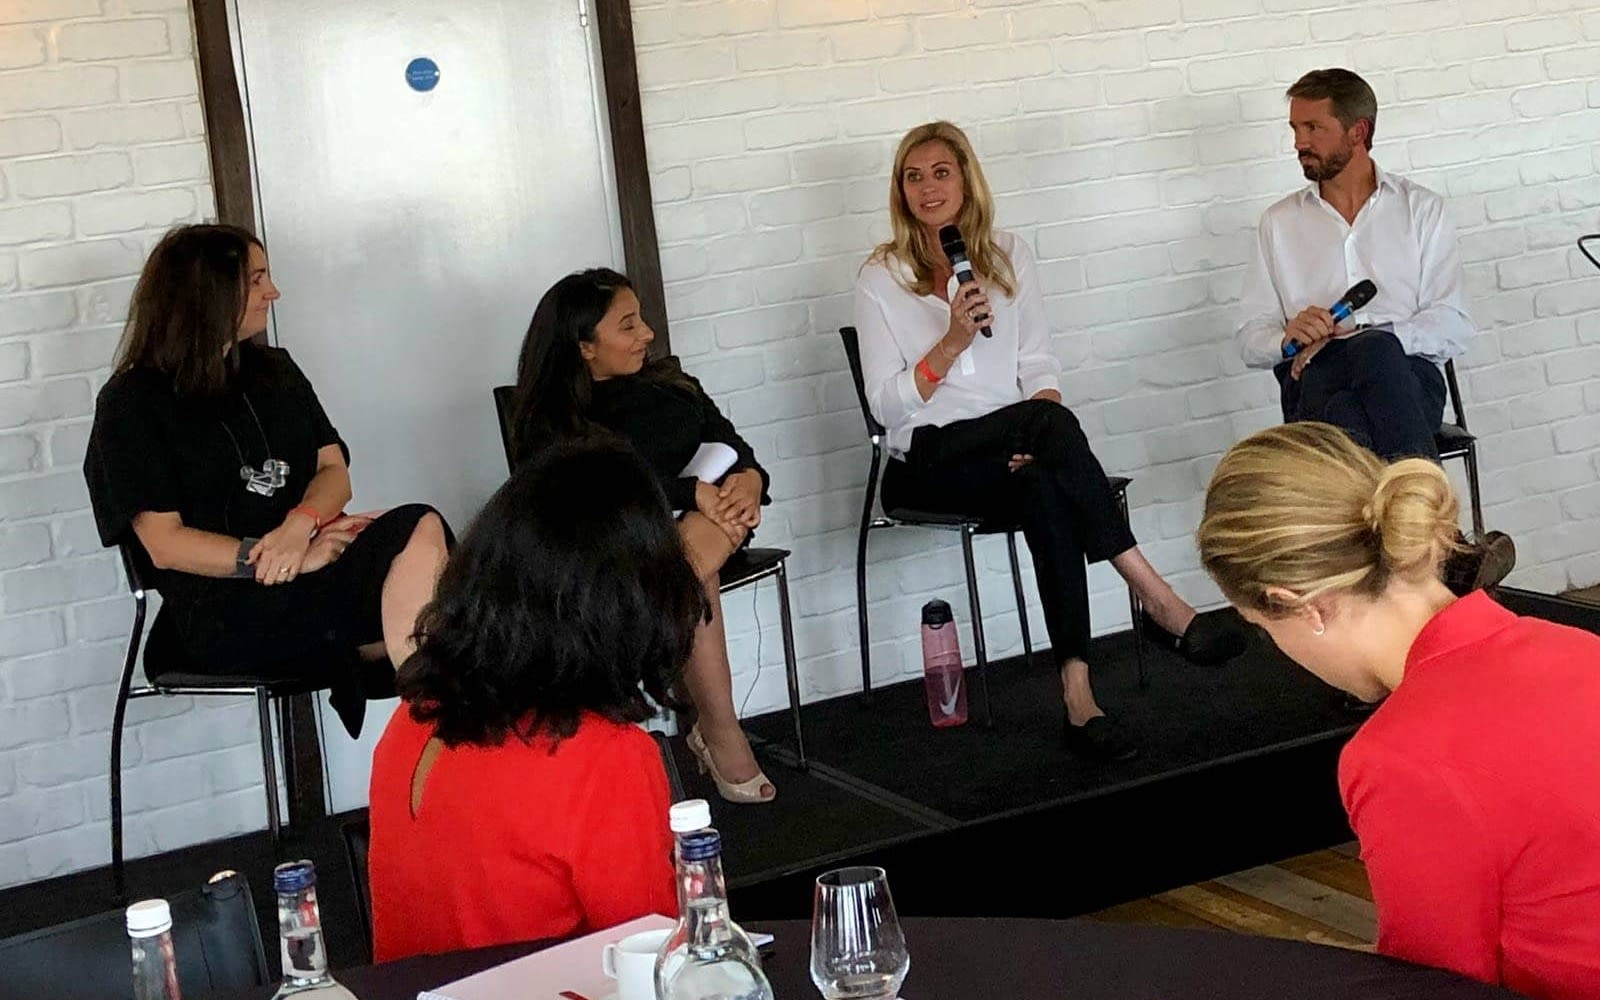 Holly Branson and Josh Bayliss speaking to two women at 100% Human at Work panel